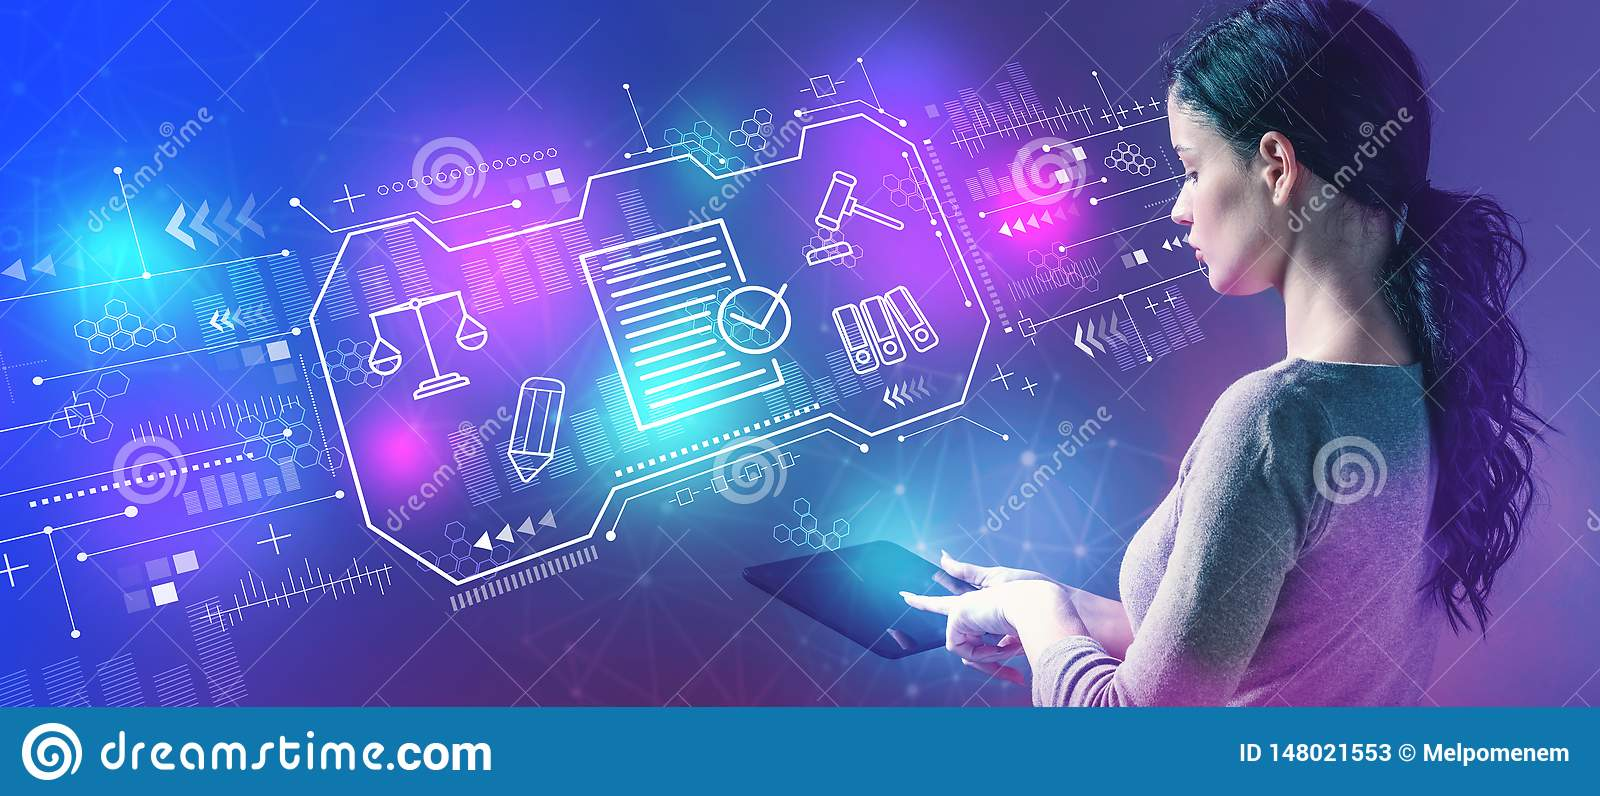 Compliance theme with woman using a tablet